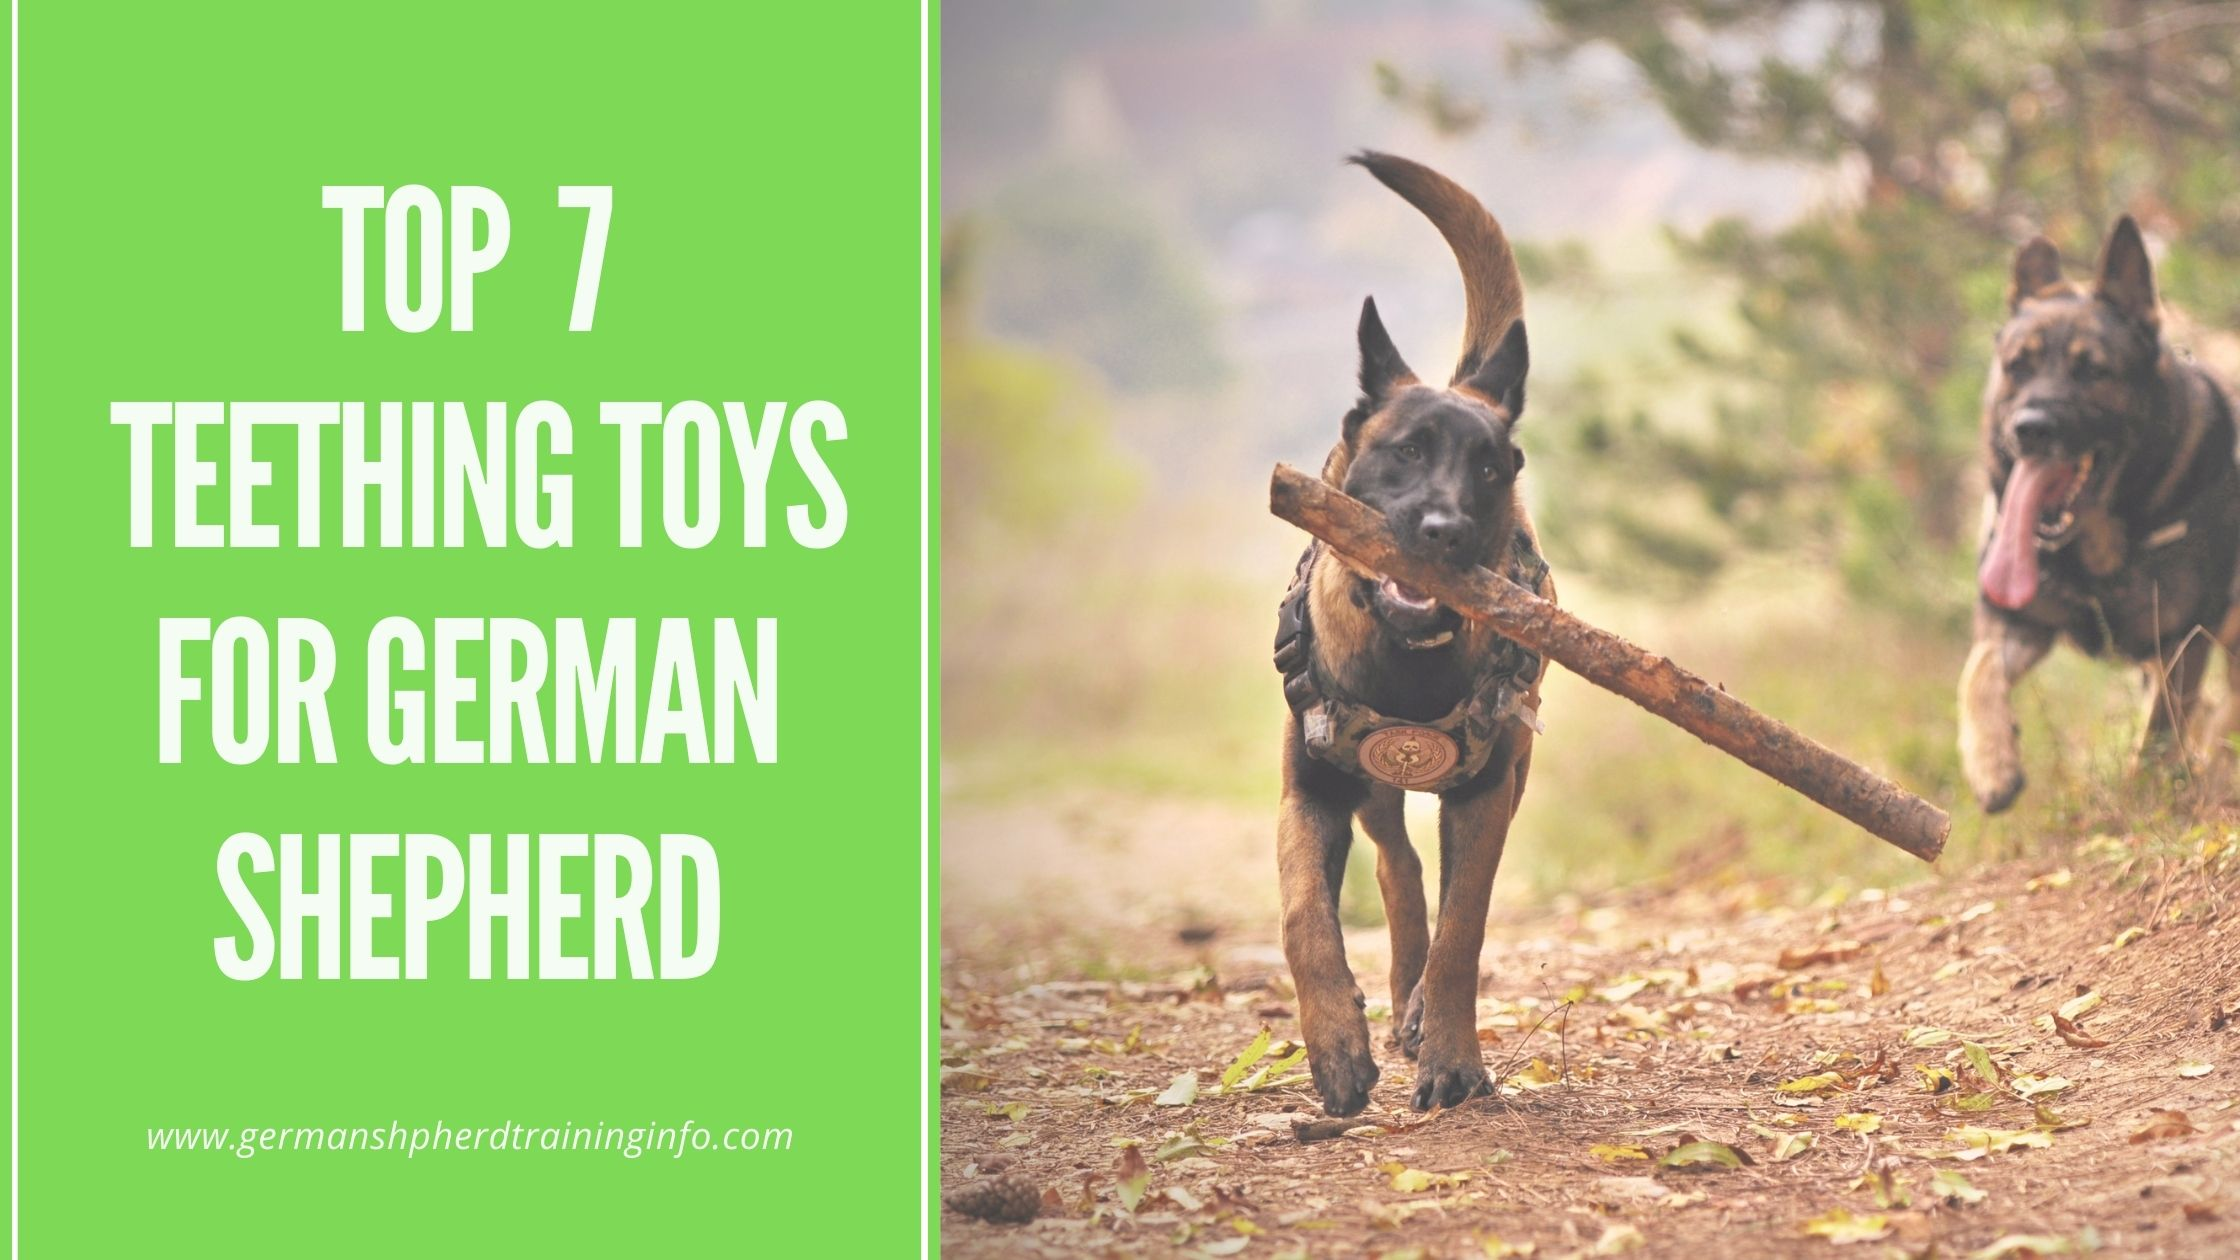 List of top 7 teething toys for german shepherd dogs